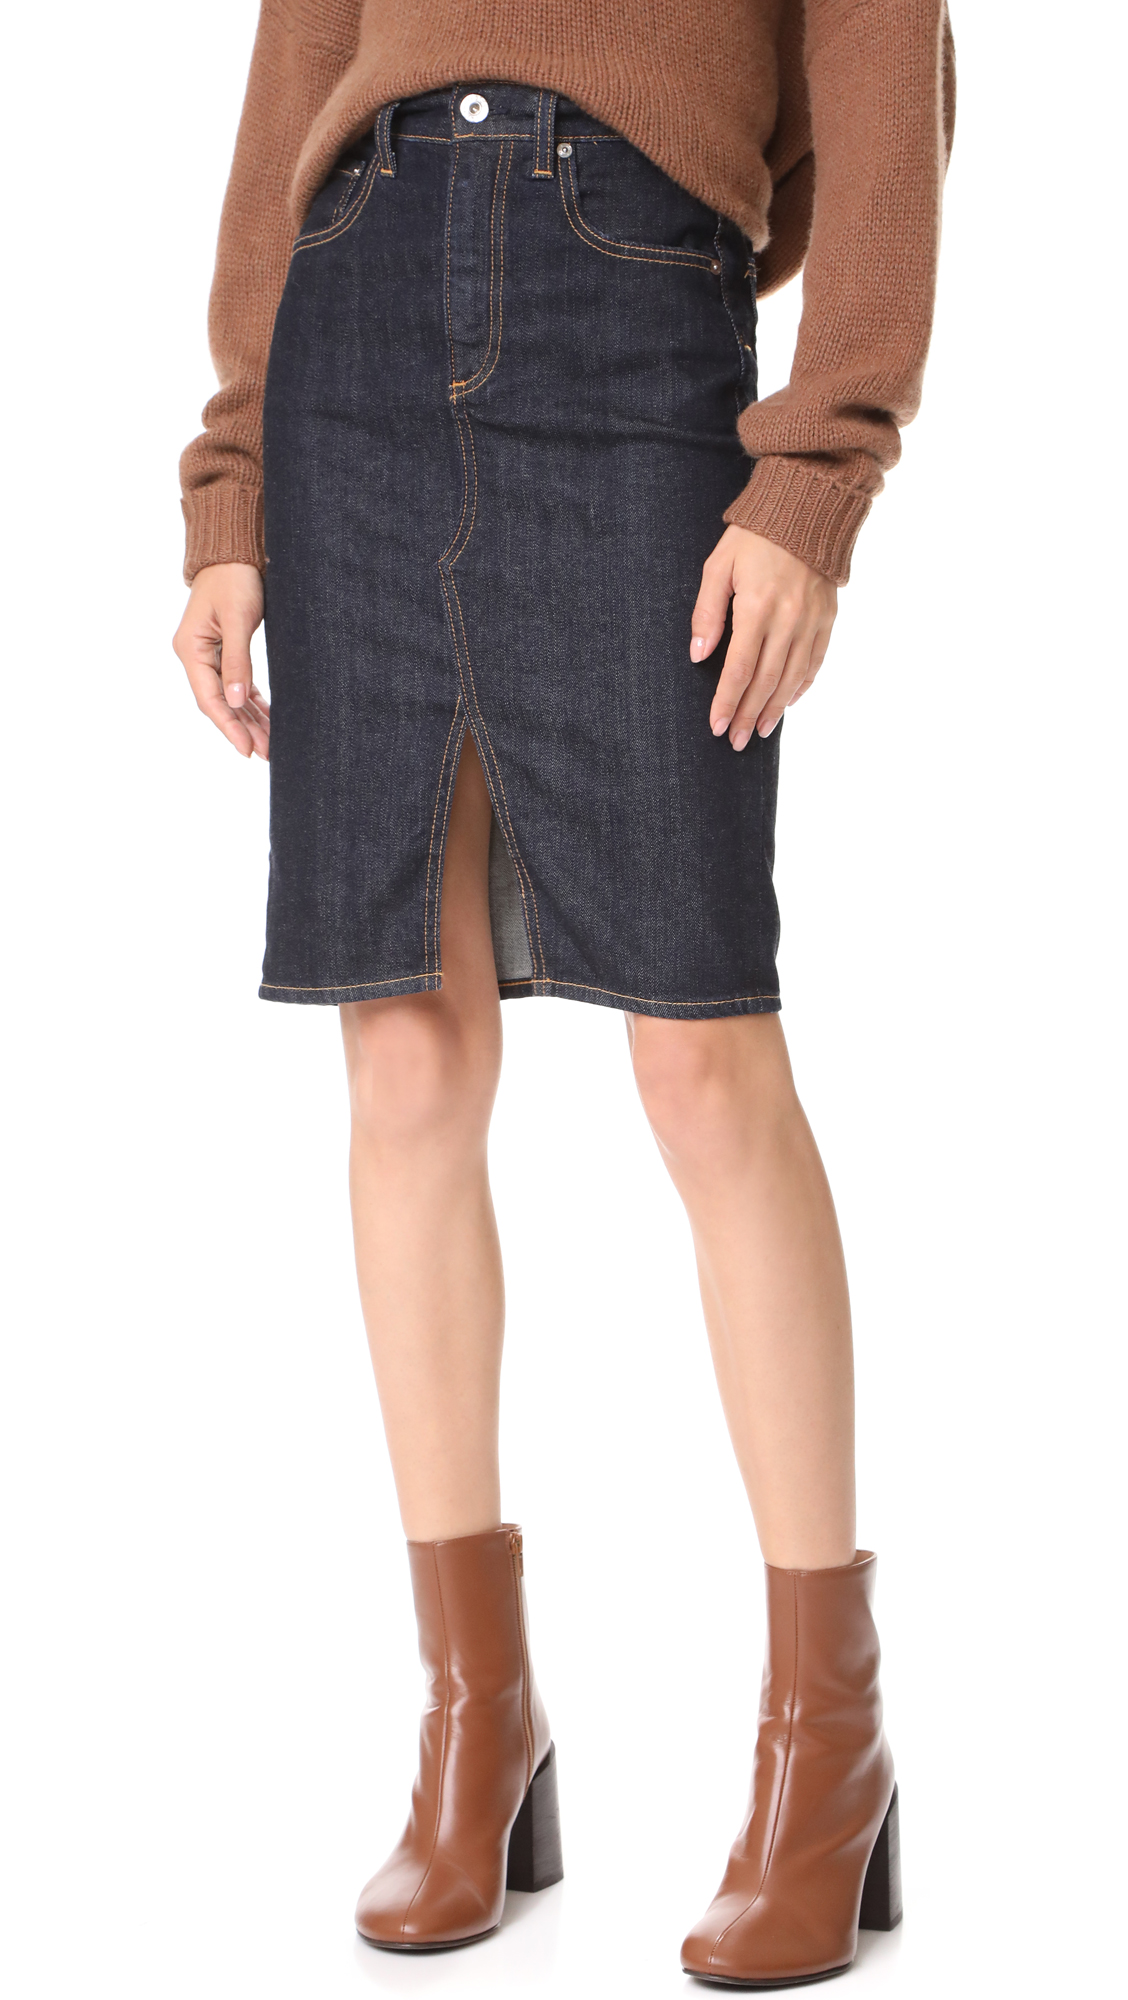 AG Emery High Waisted Pencil Skirt In Indigo Autumn